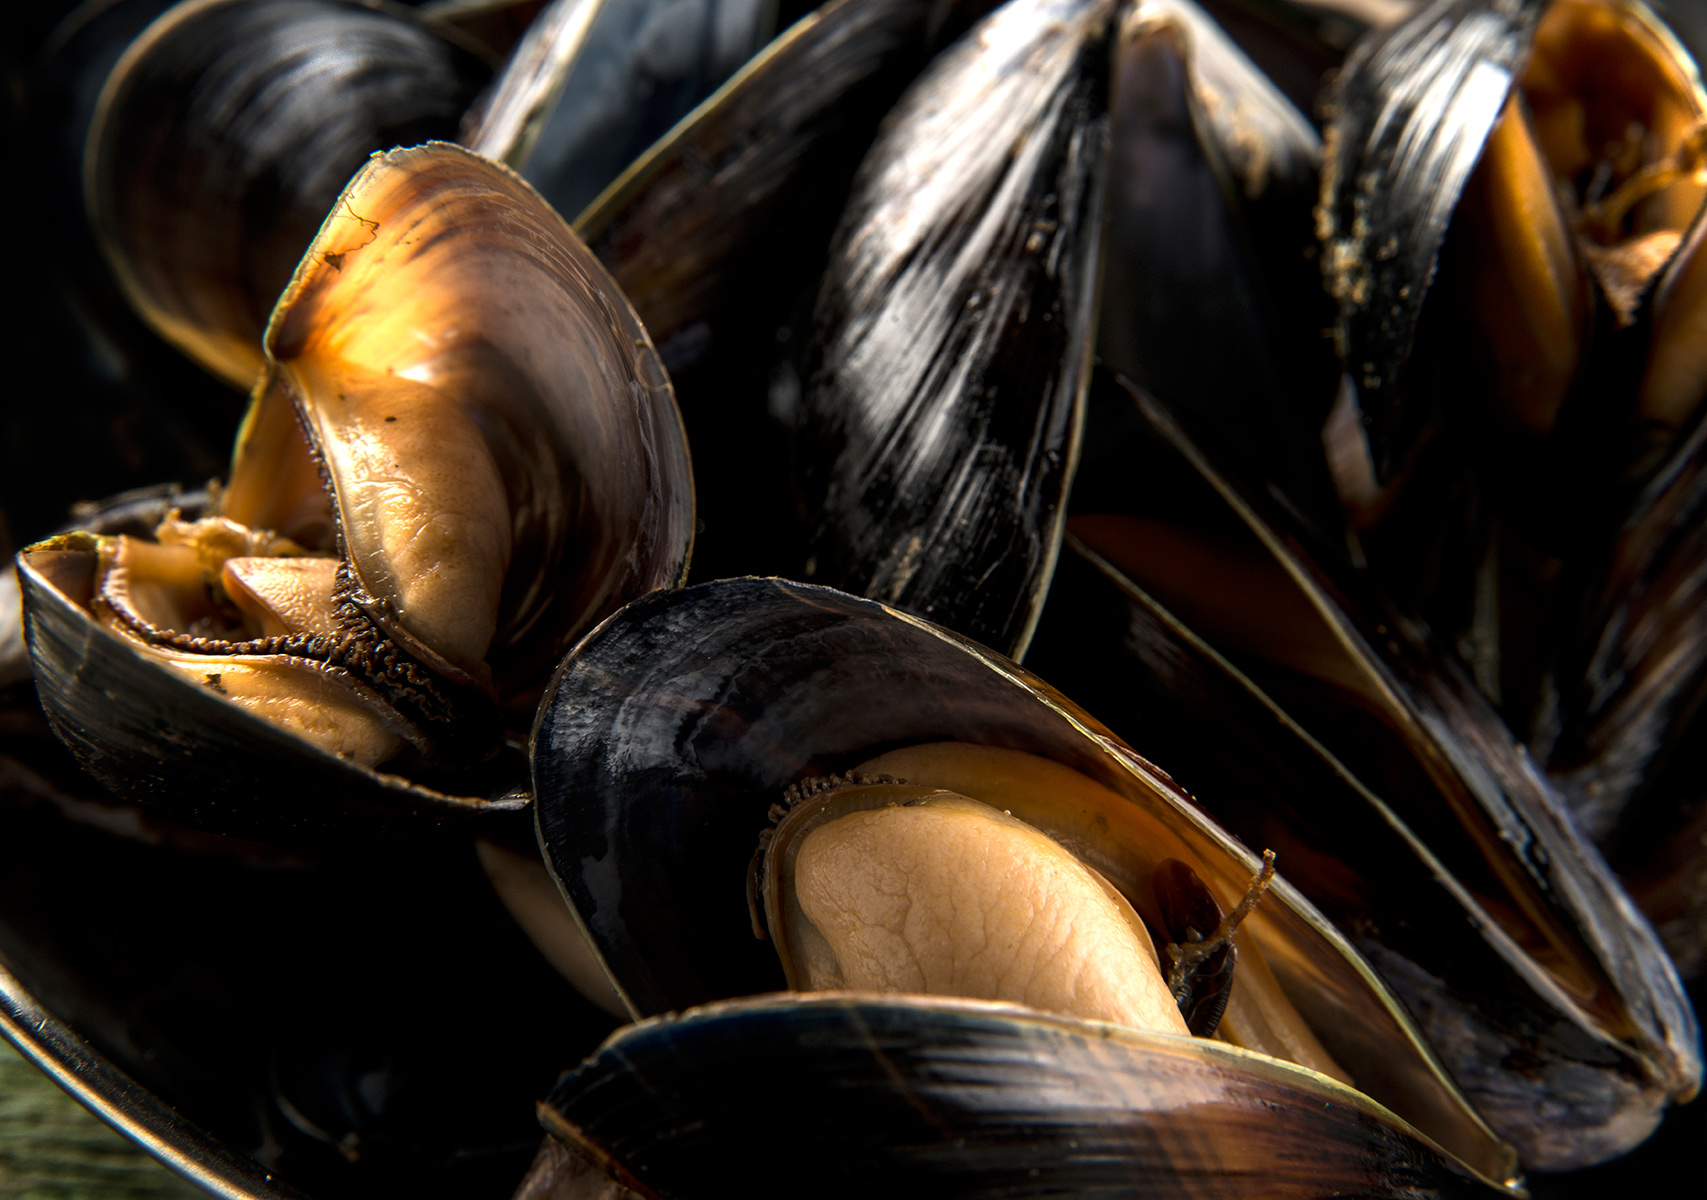 Mussels-Carl Kravats Food Photography